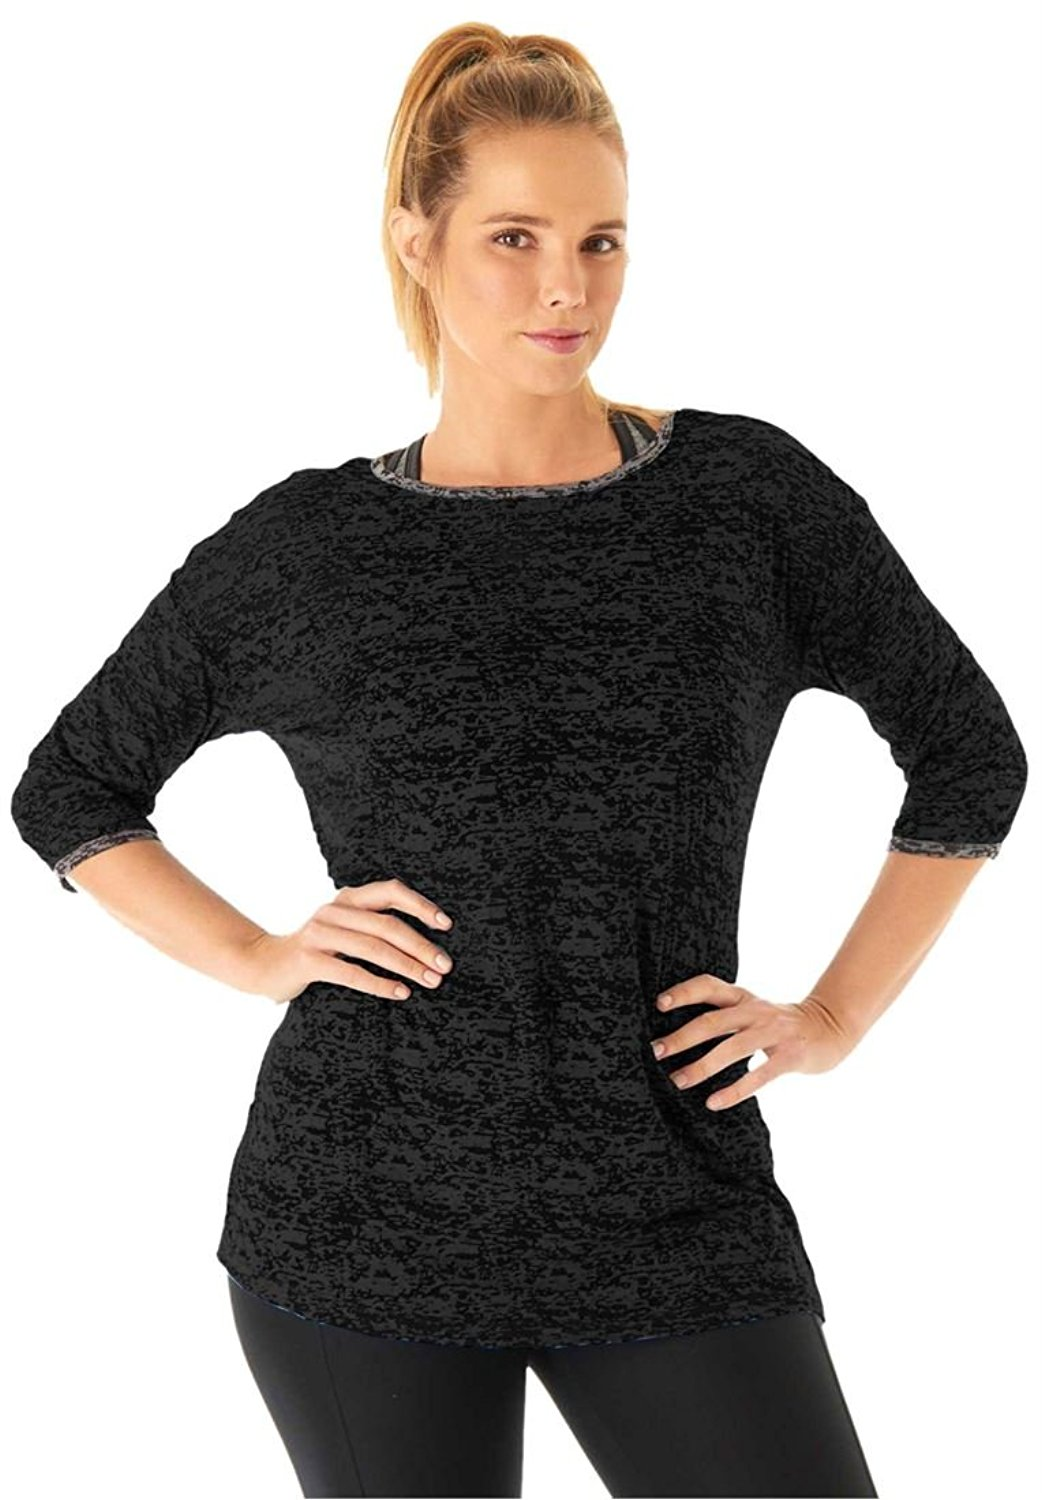 1d52cb5c301 Get Quotations · Bargain Catalog Outlet Fullbeauty Sport Plus Size Relaxed  Burnout Boatneck Tunic